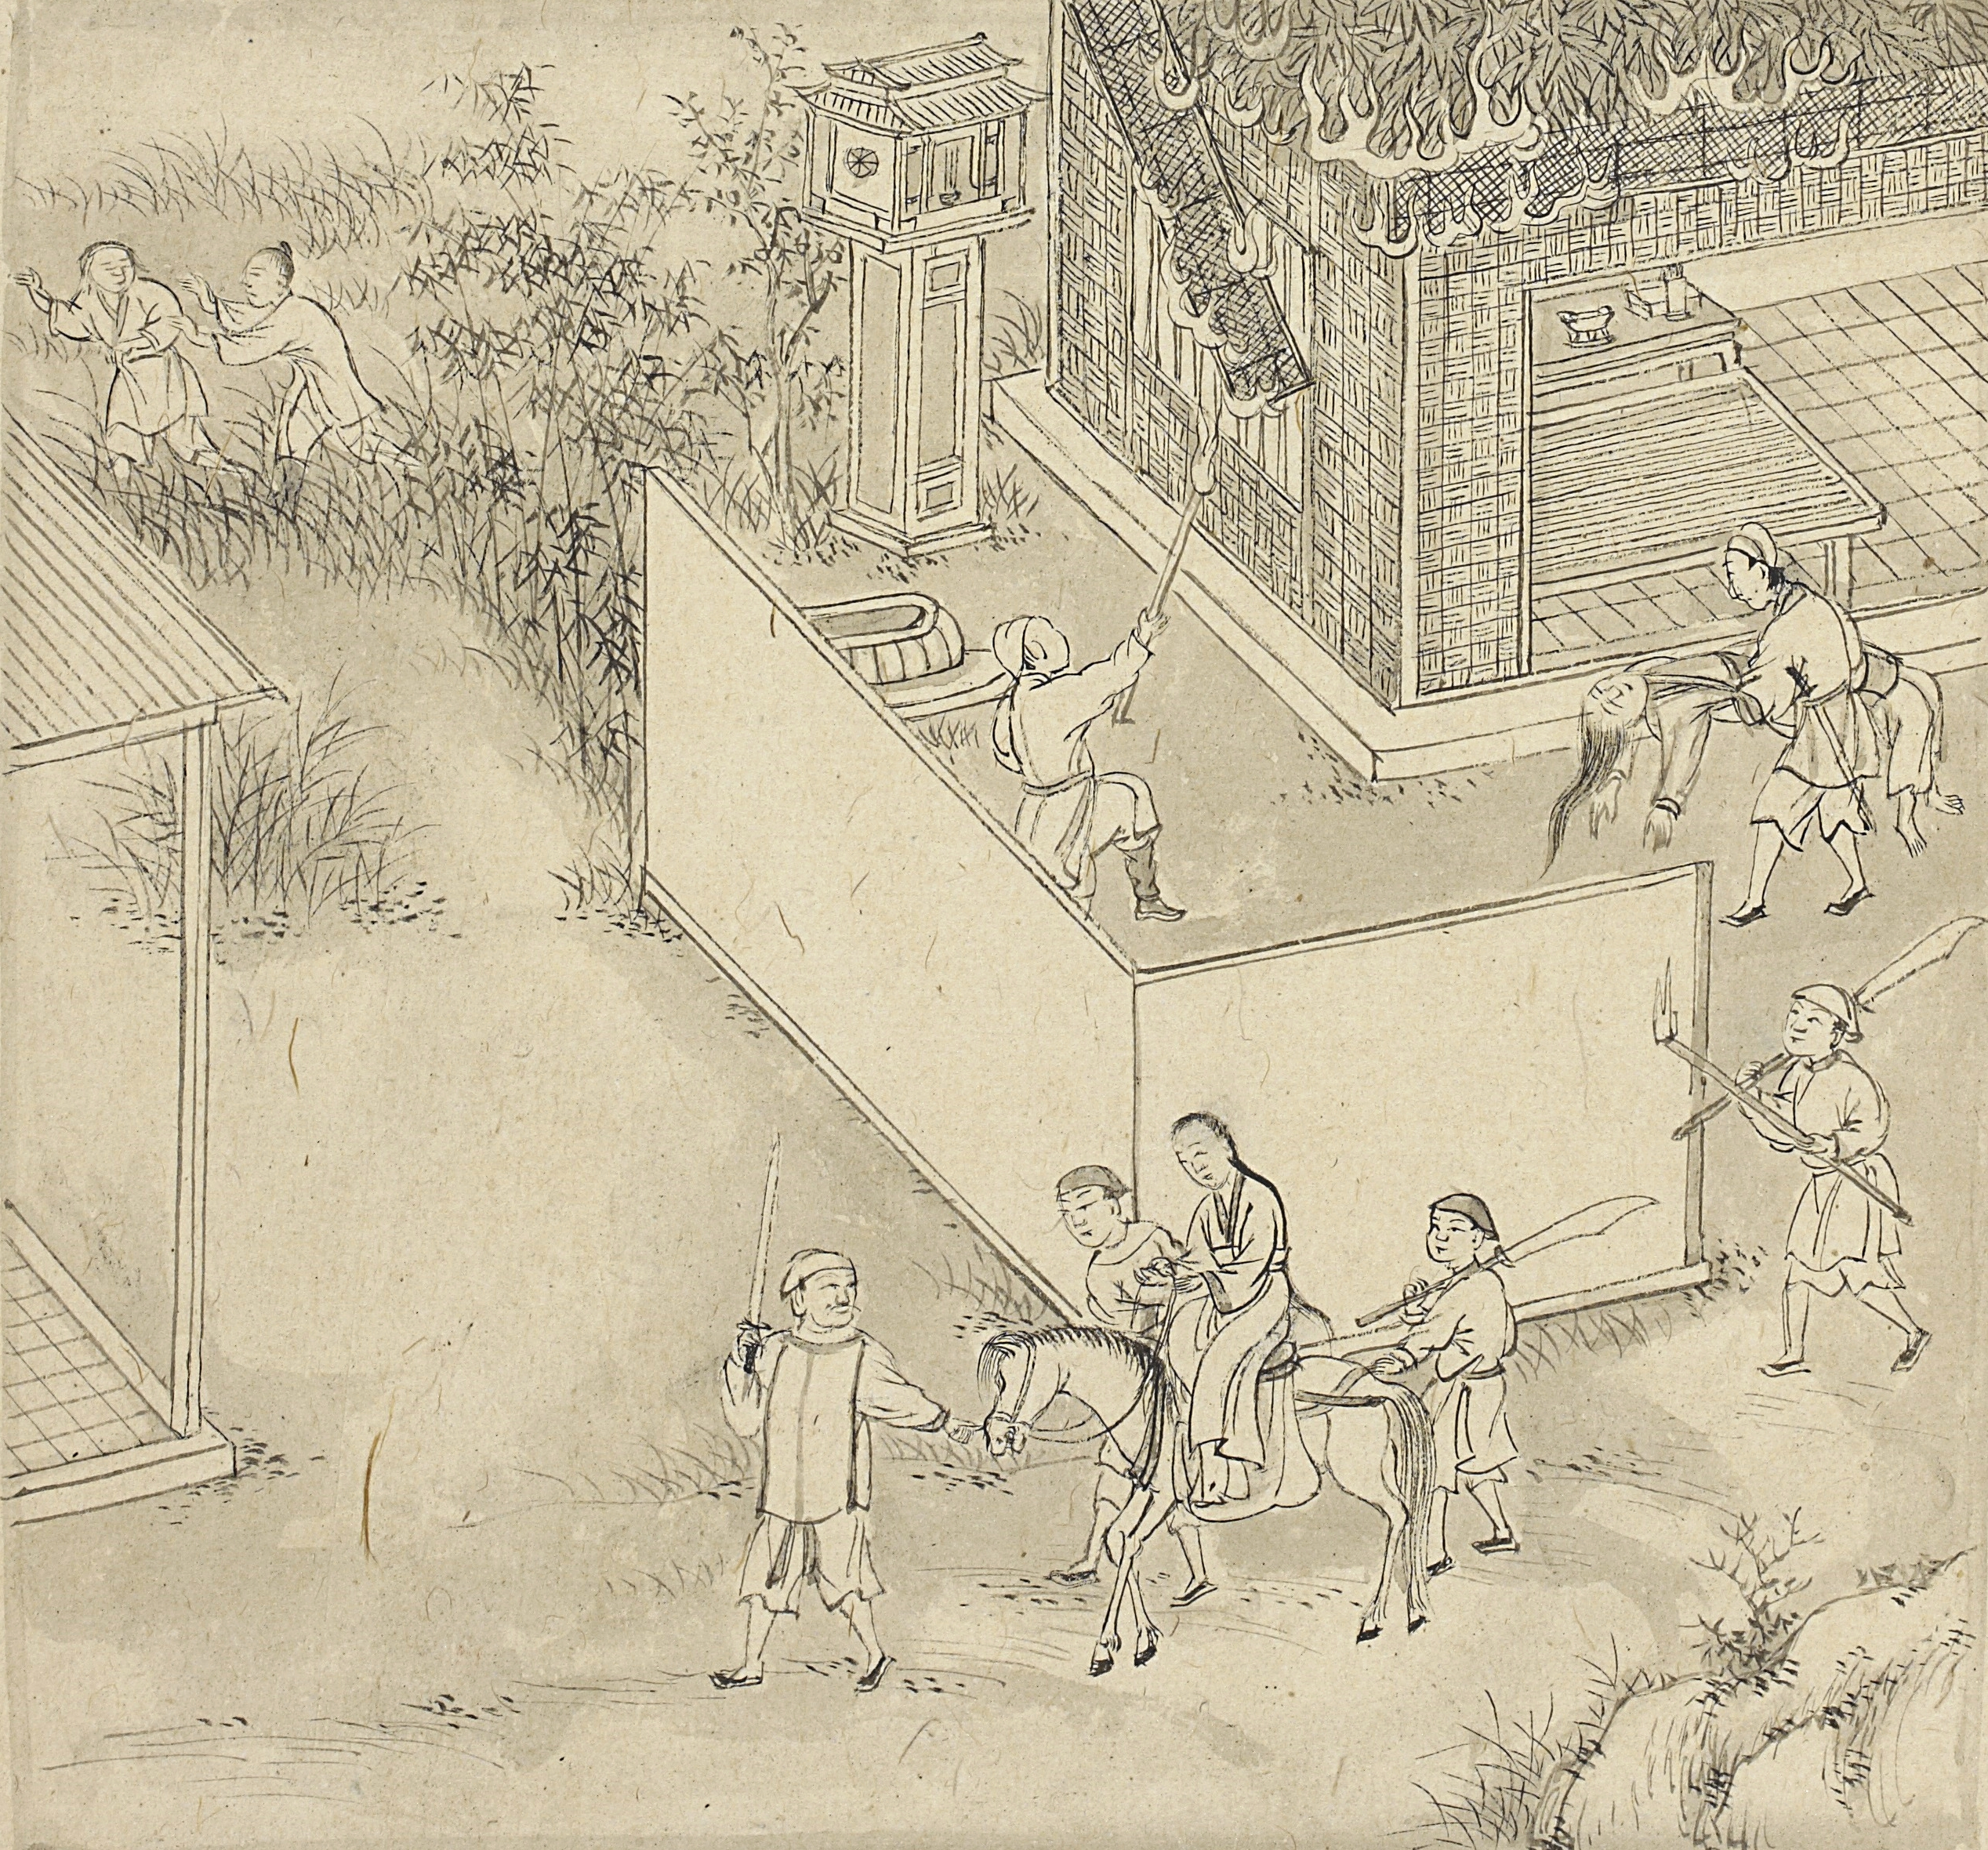 Kiều is kidnapped on the order of Hoạn Thư, the first wife of Kiều's second husband. Credit: British Library.